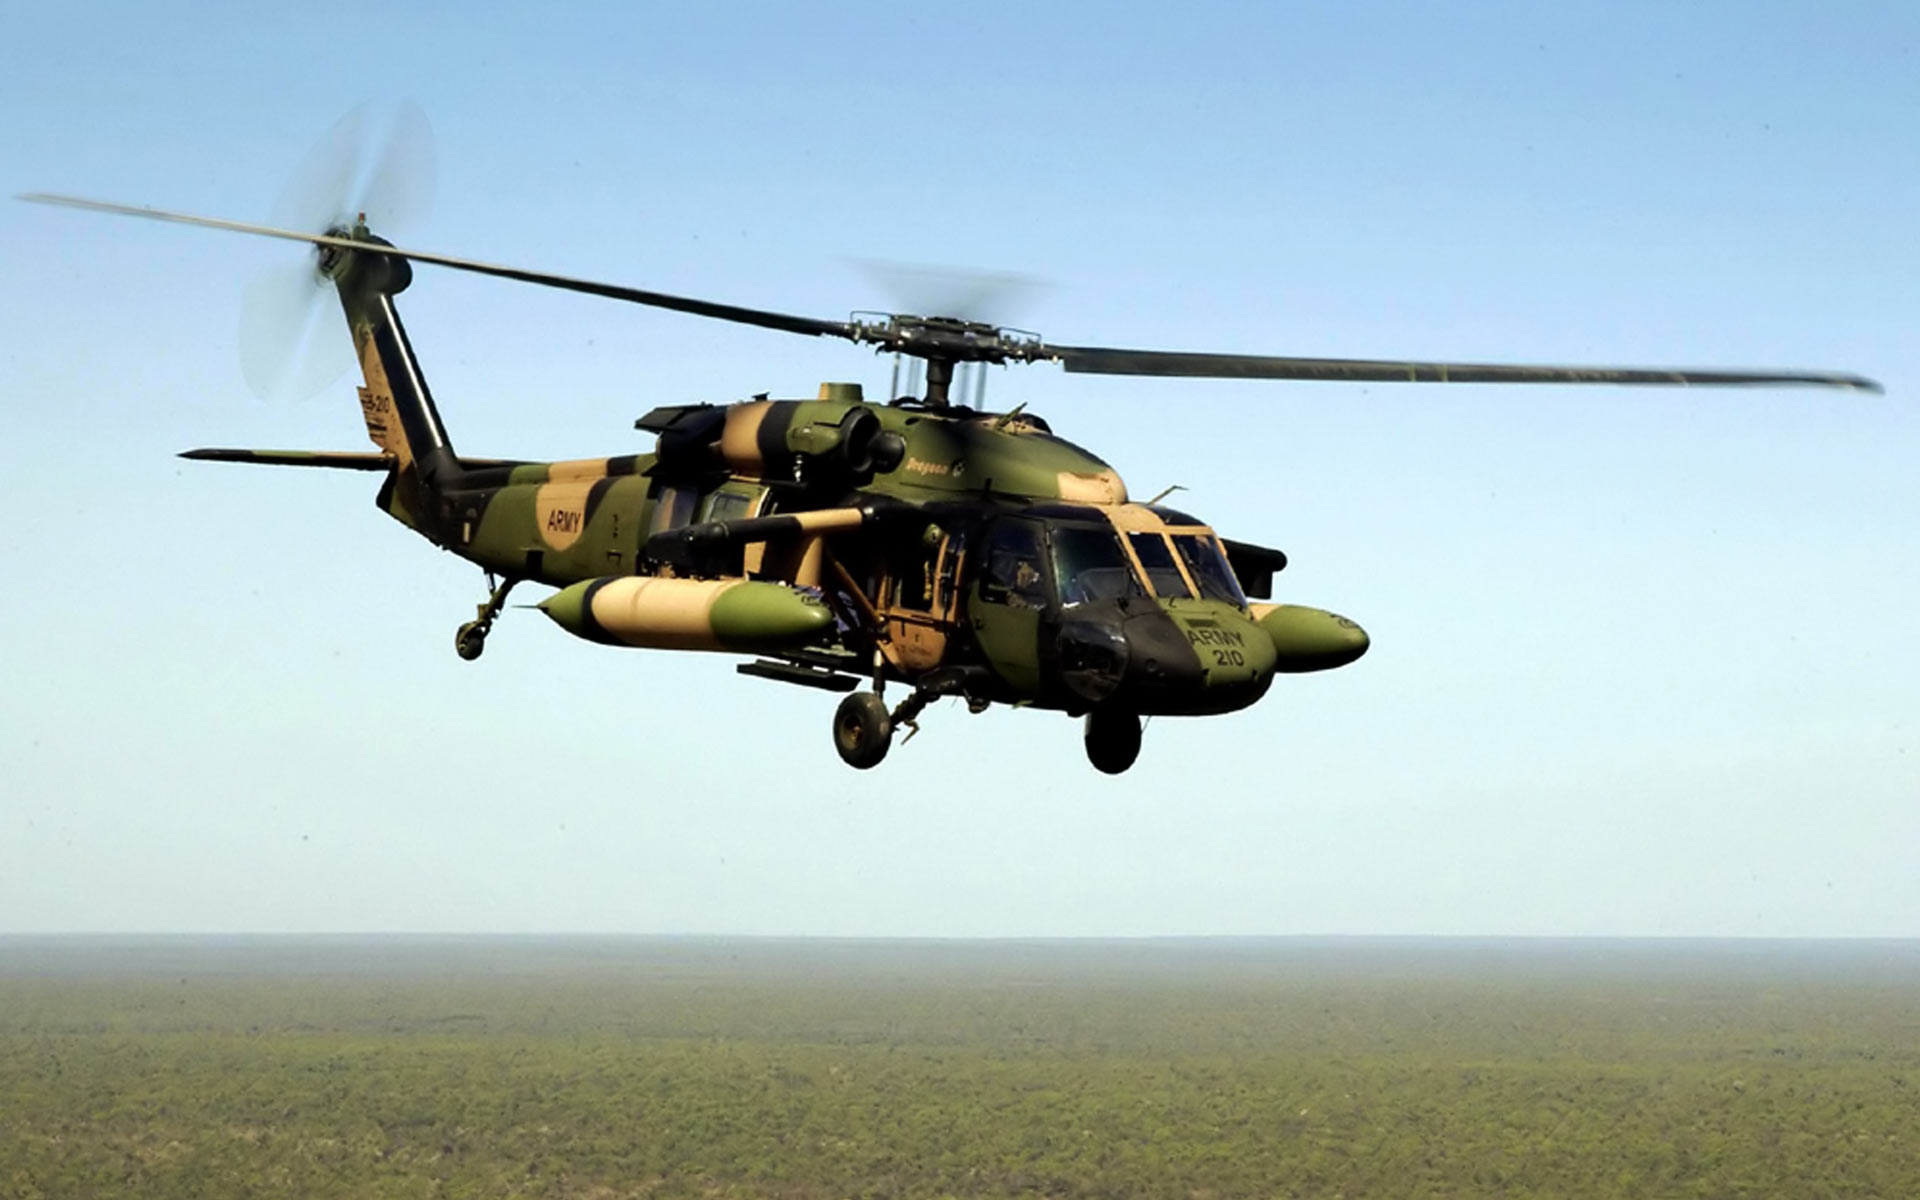 Black Hawk Helicopter Wallpapers HD